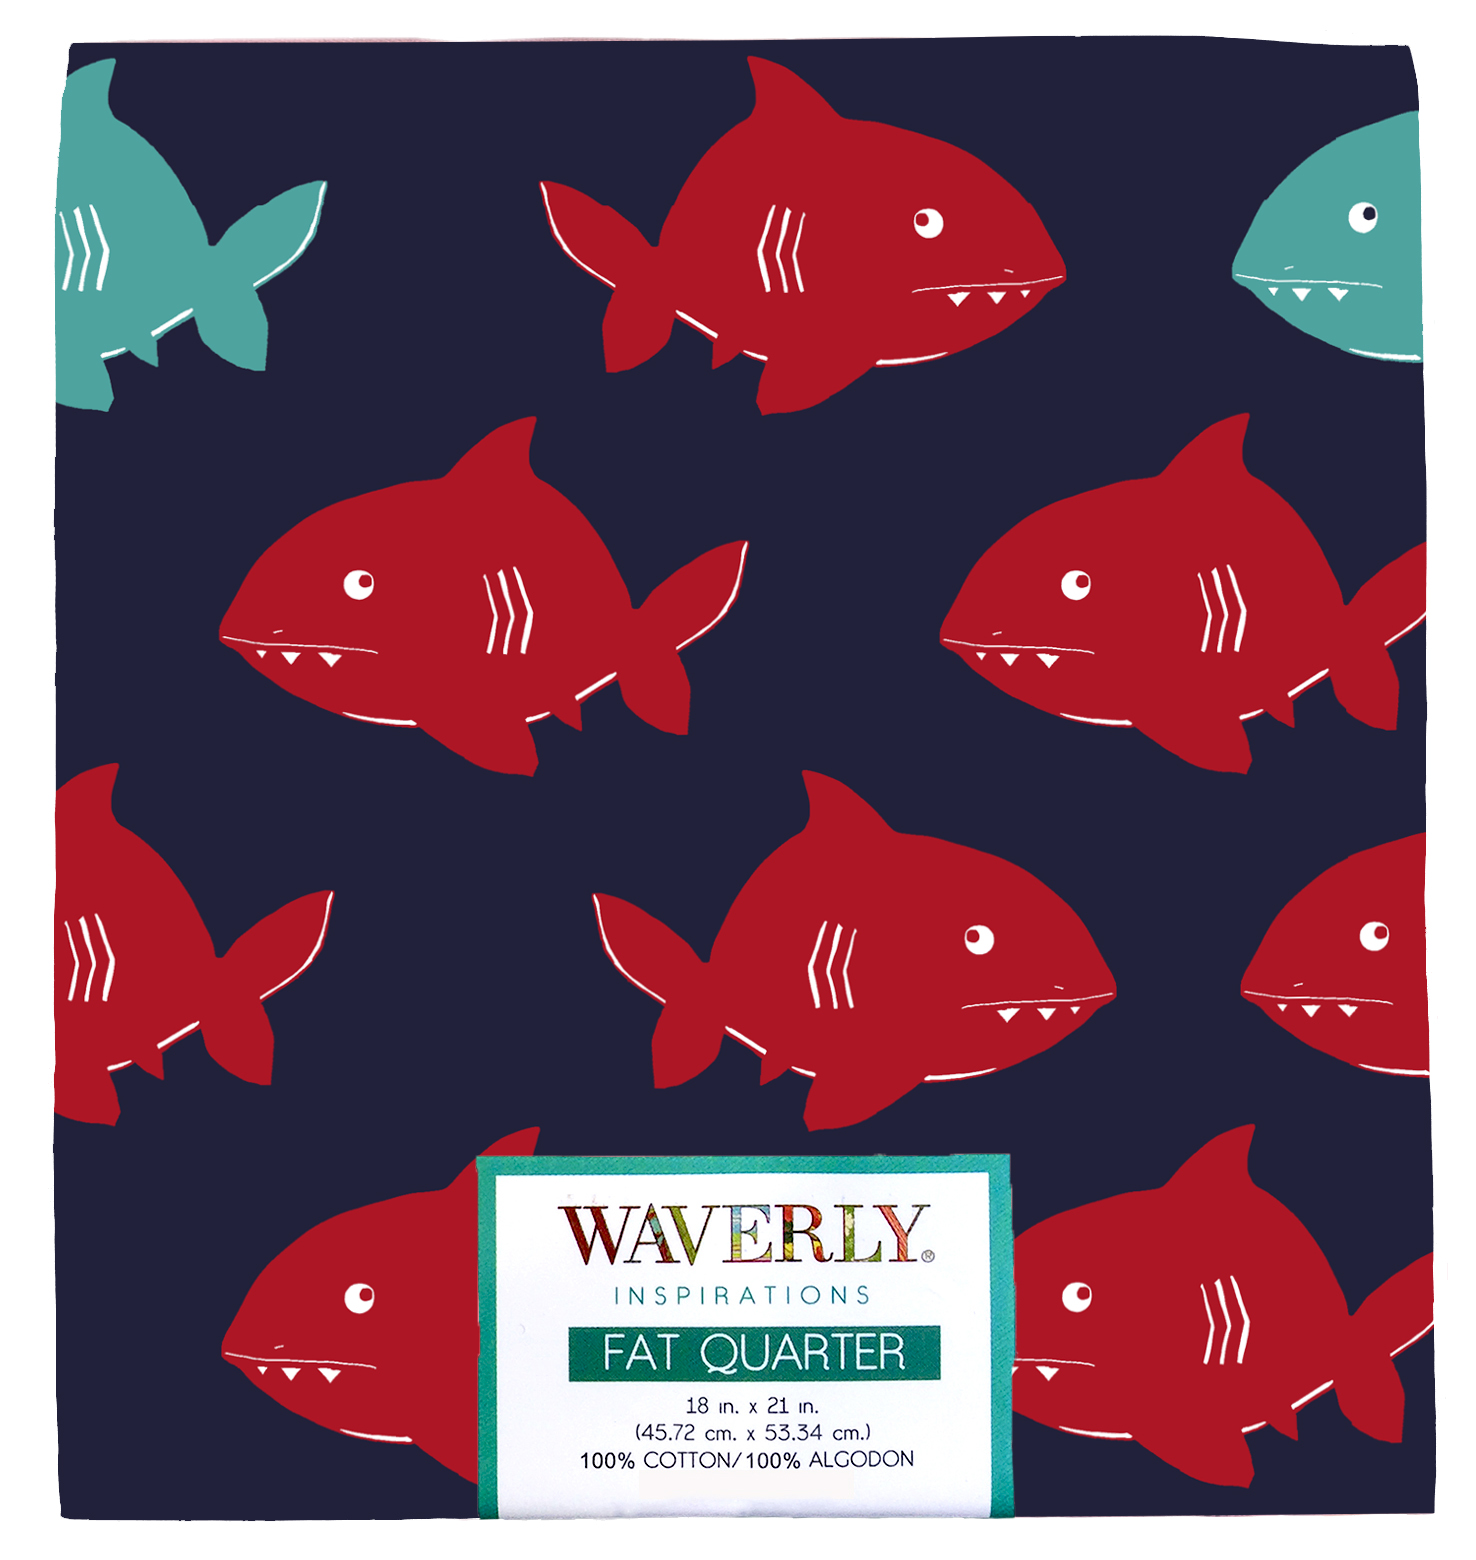 "Waverly Inspiration Fat Quarter SHARK INK 100% Cotton, Shark Print Fabric, Quilting Fabric, Craft fabric, 18"" by 21"", 140 GSM"